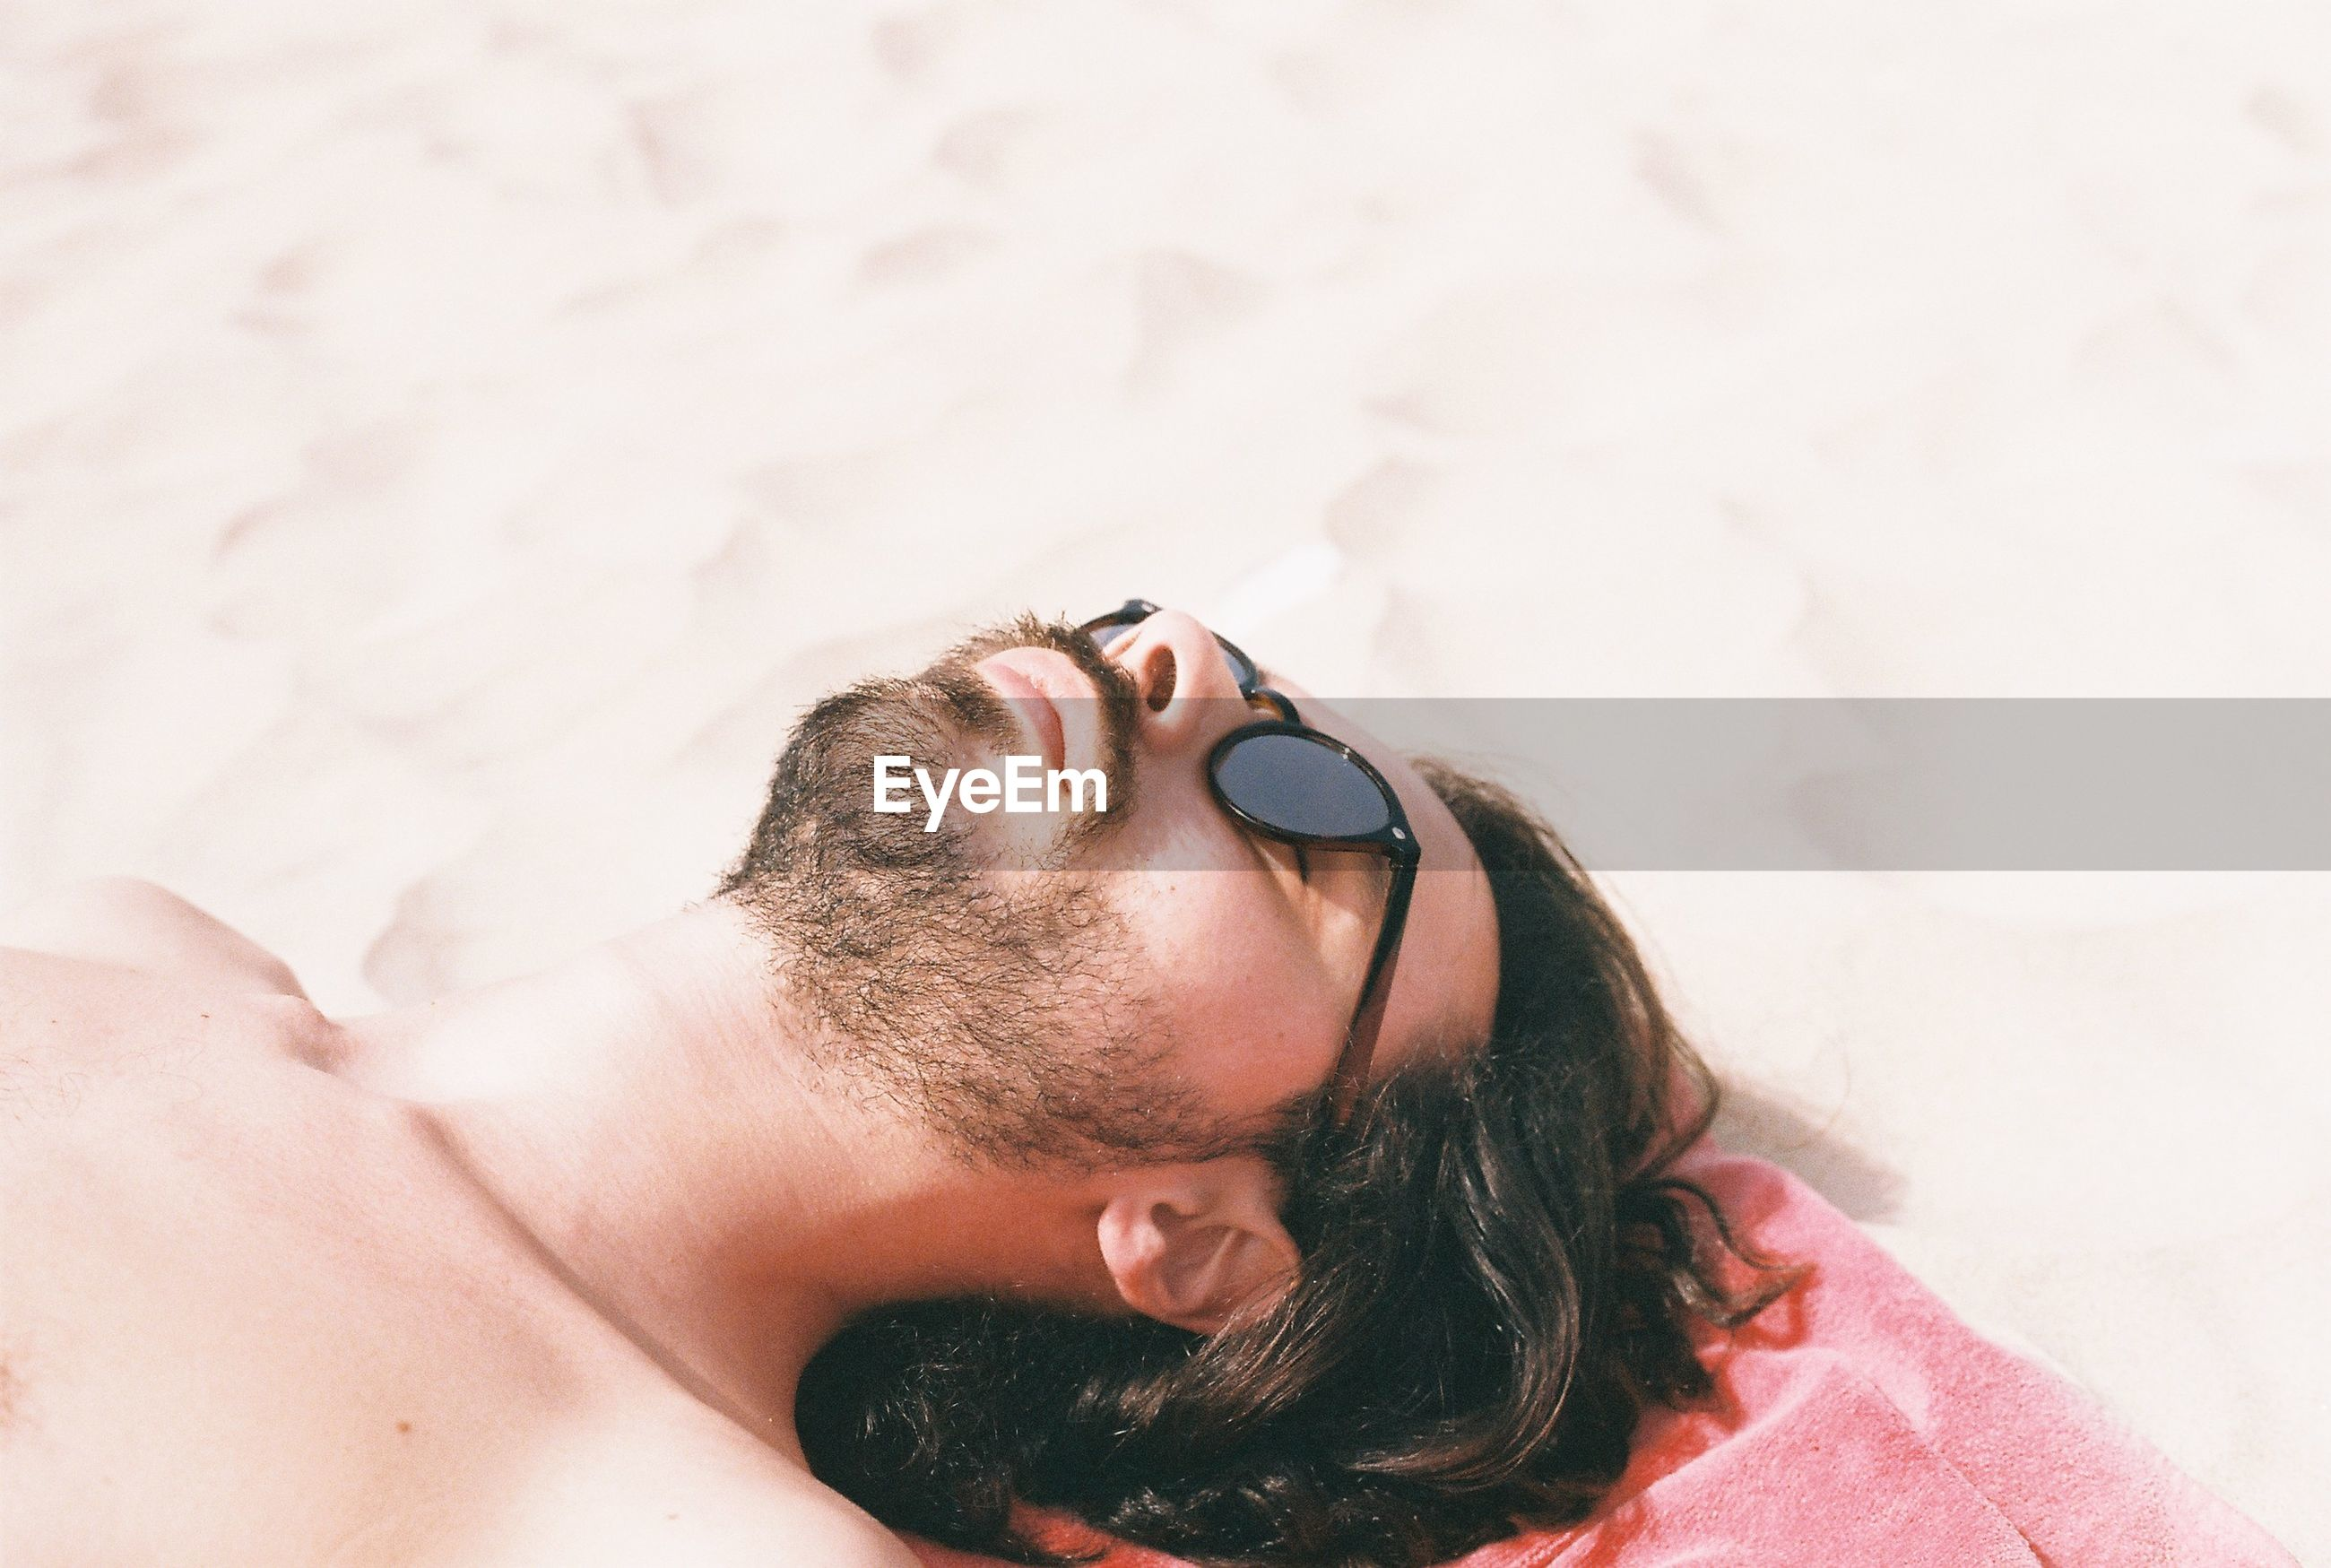 High angle view of shirtless young man lying on sand at beach during sunny day